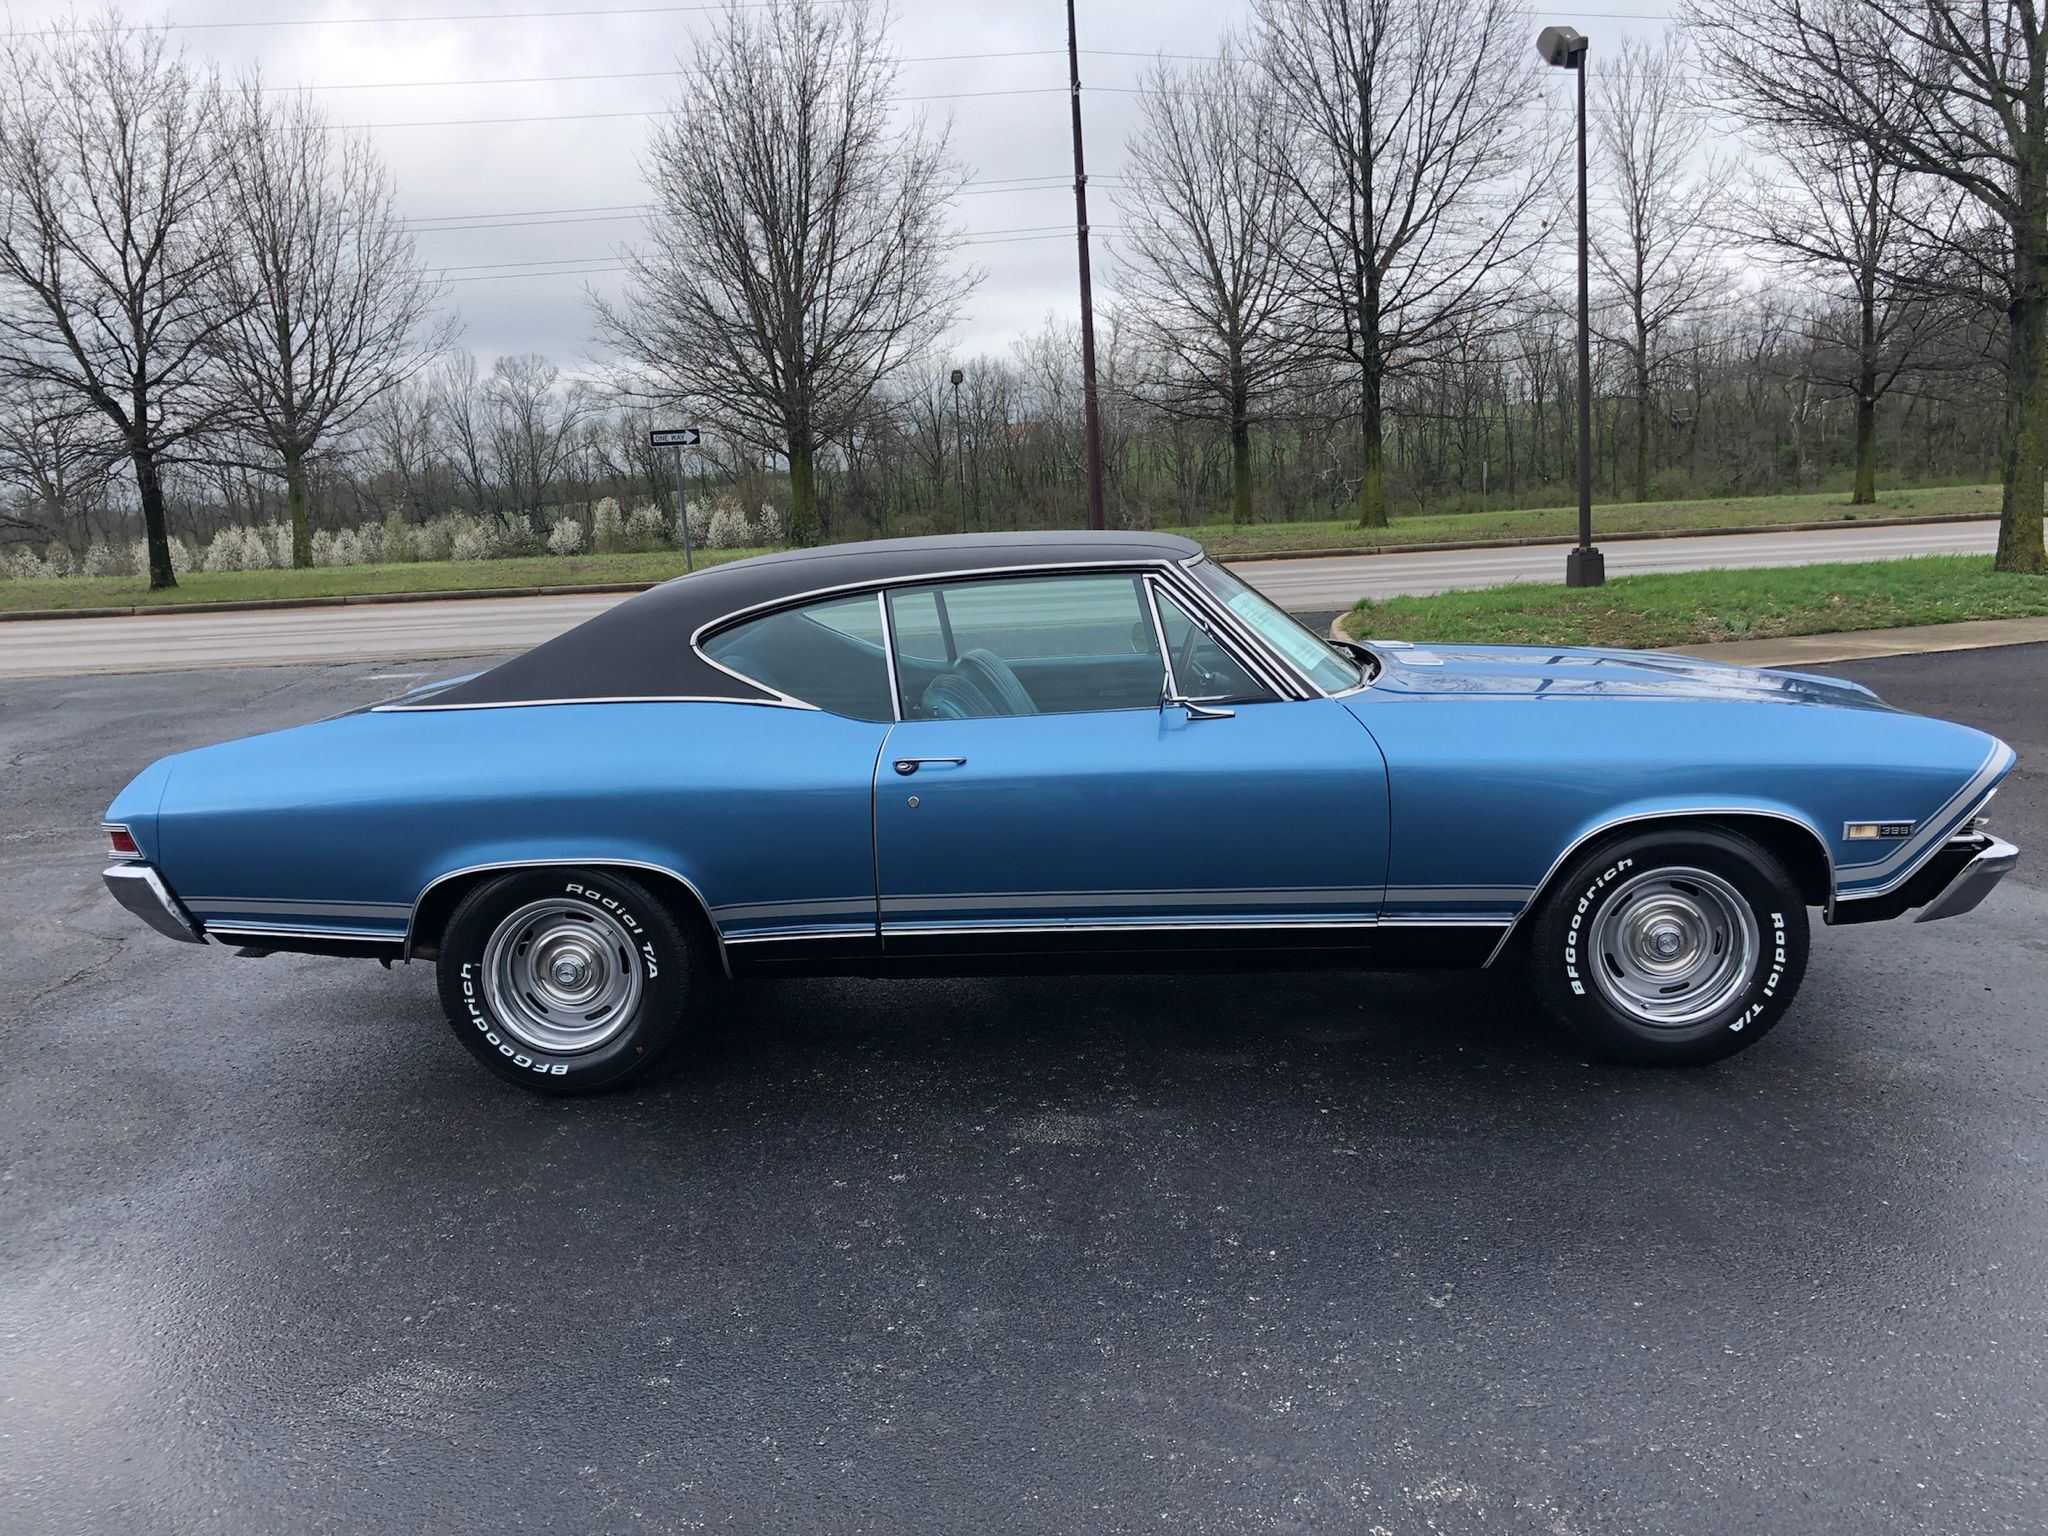 1968 Chevrolet Chevelle SS 396 For Sale | AllCollectorCars.com